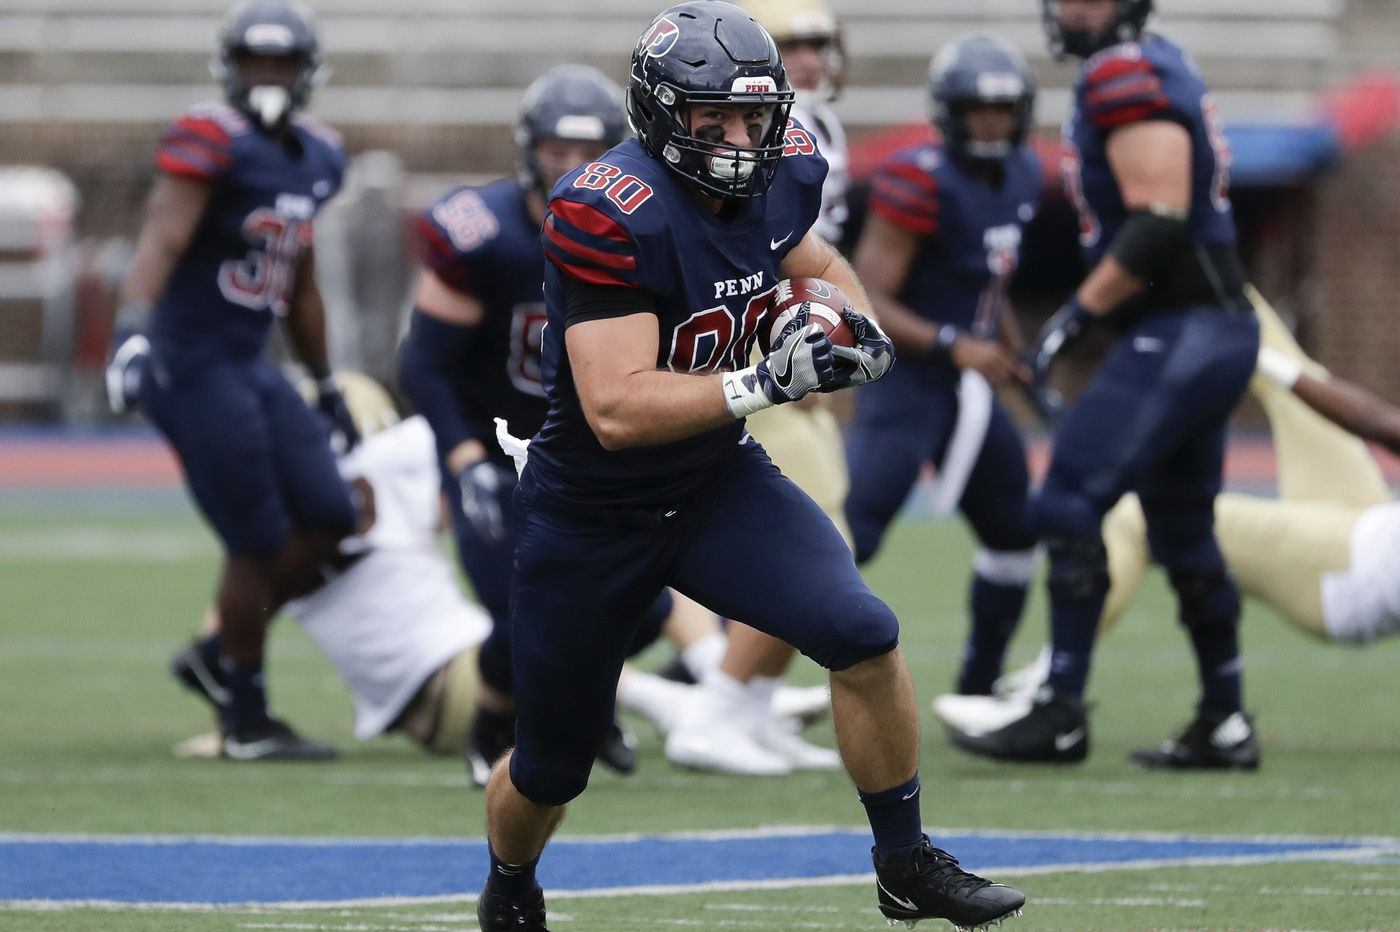 Quakers' offense explodes after struggling early in rout of Lehigh 30-10